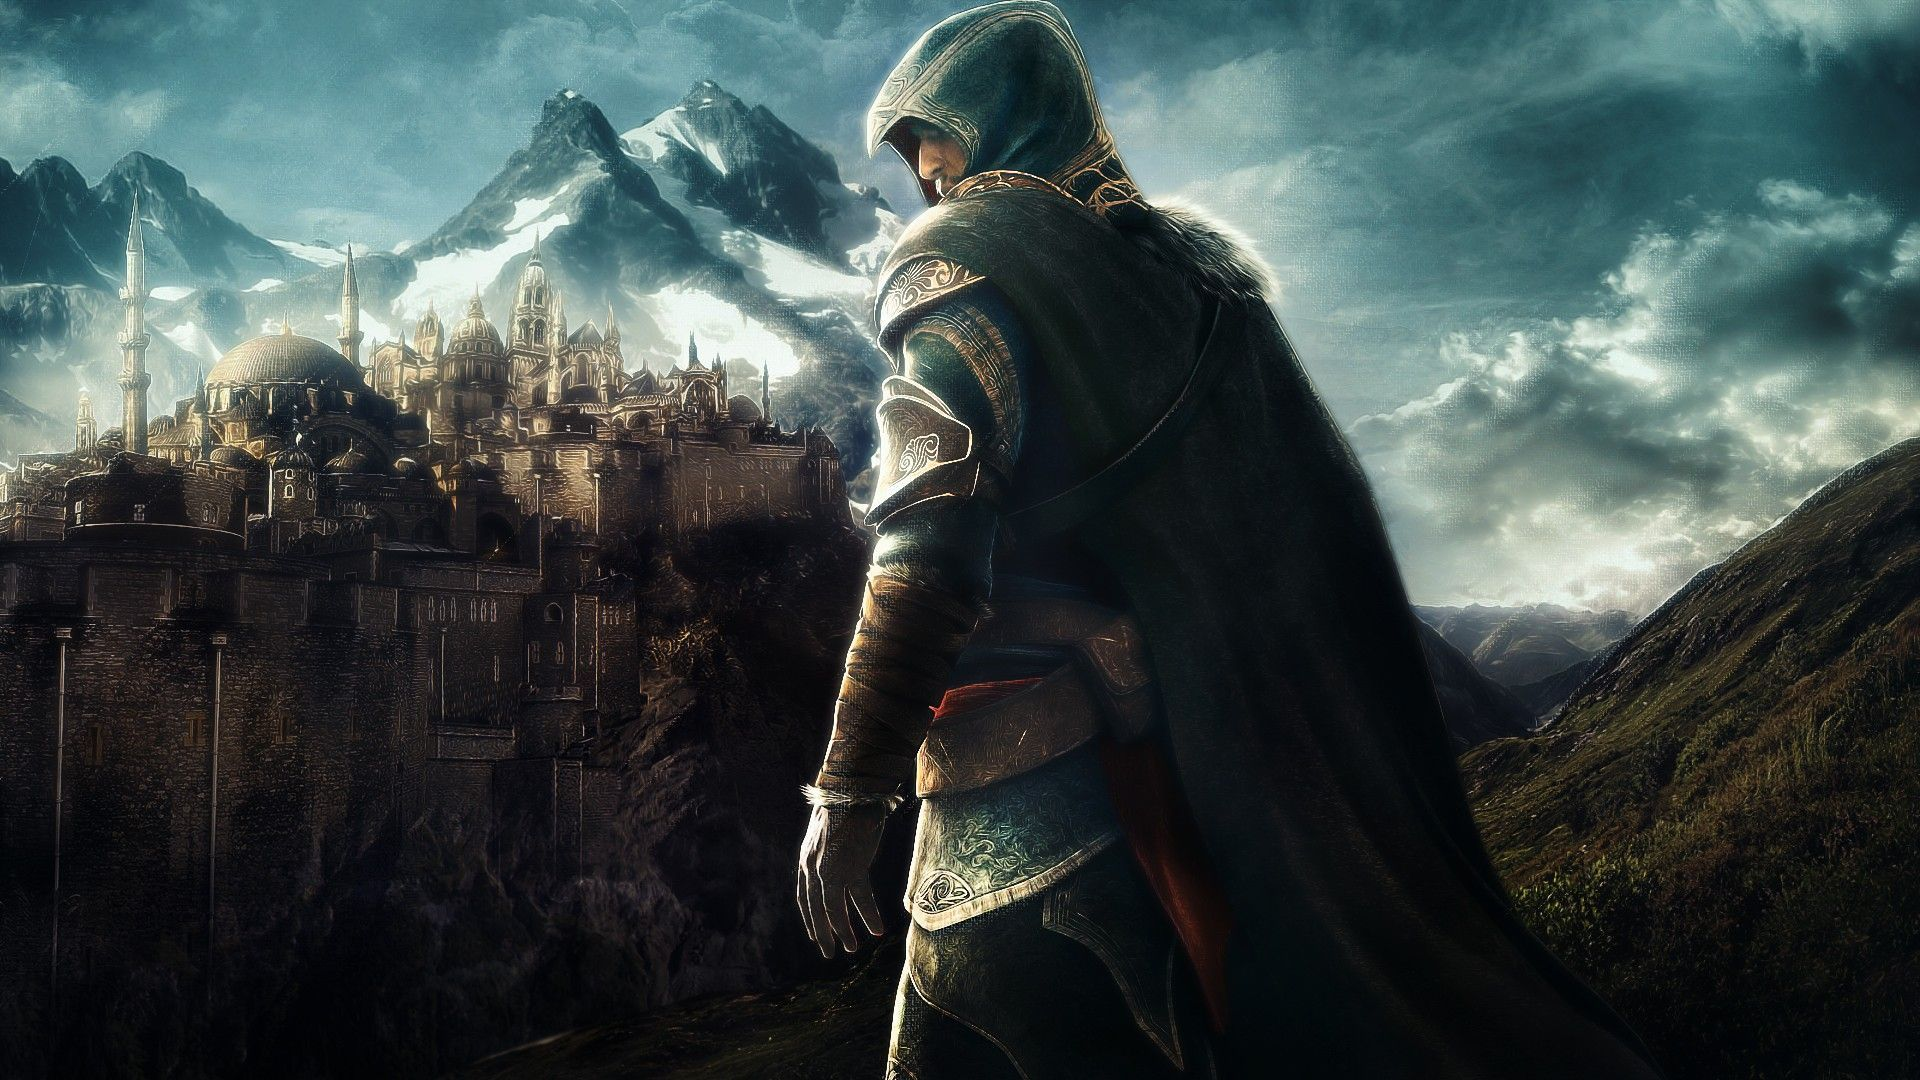 Wallpapers For Gt Hd Game 1080p Widescreen High Definition Images